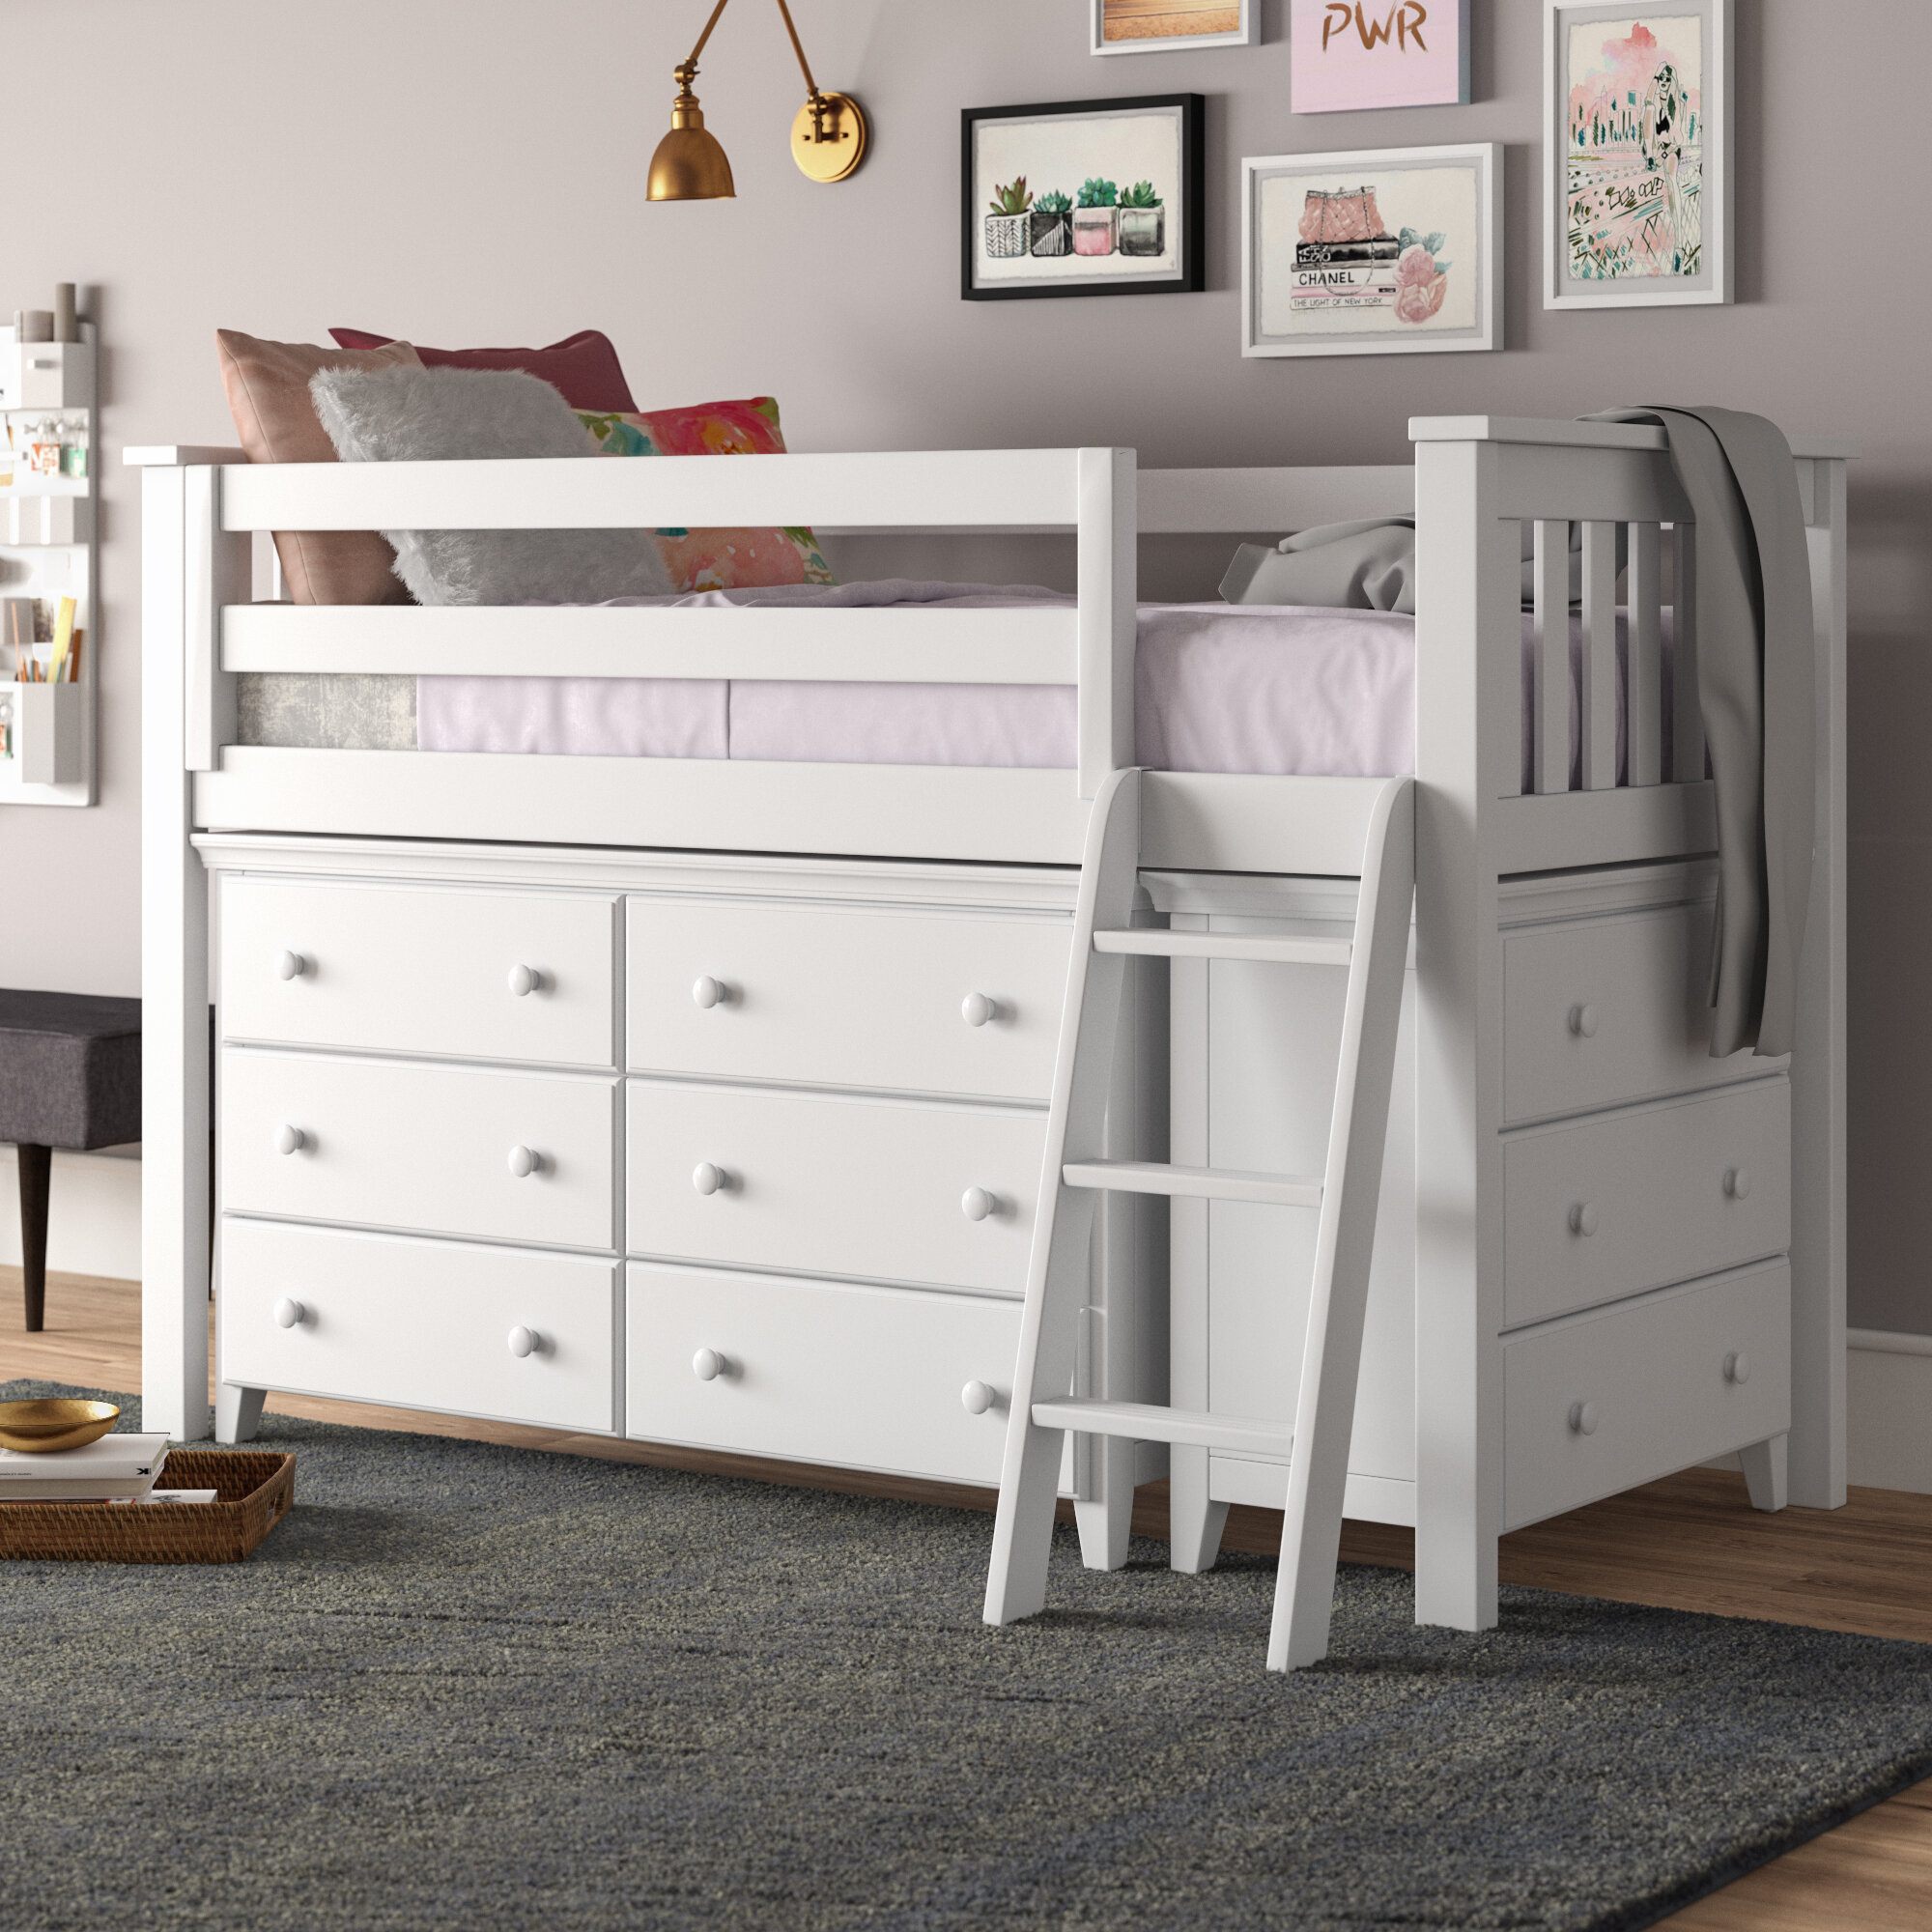 Harriet Bee Ginny Twin Low Loft Bed With Drawers Reviews Wayfair